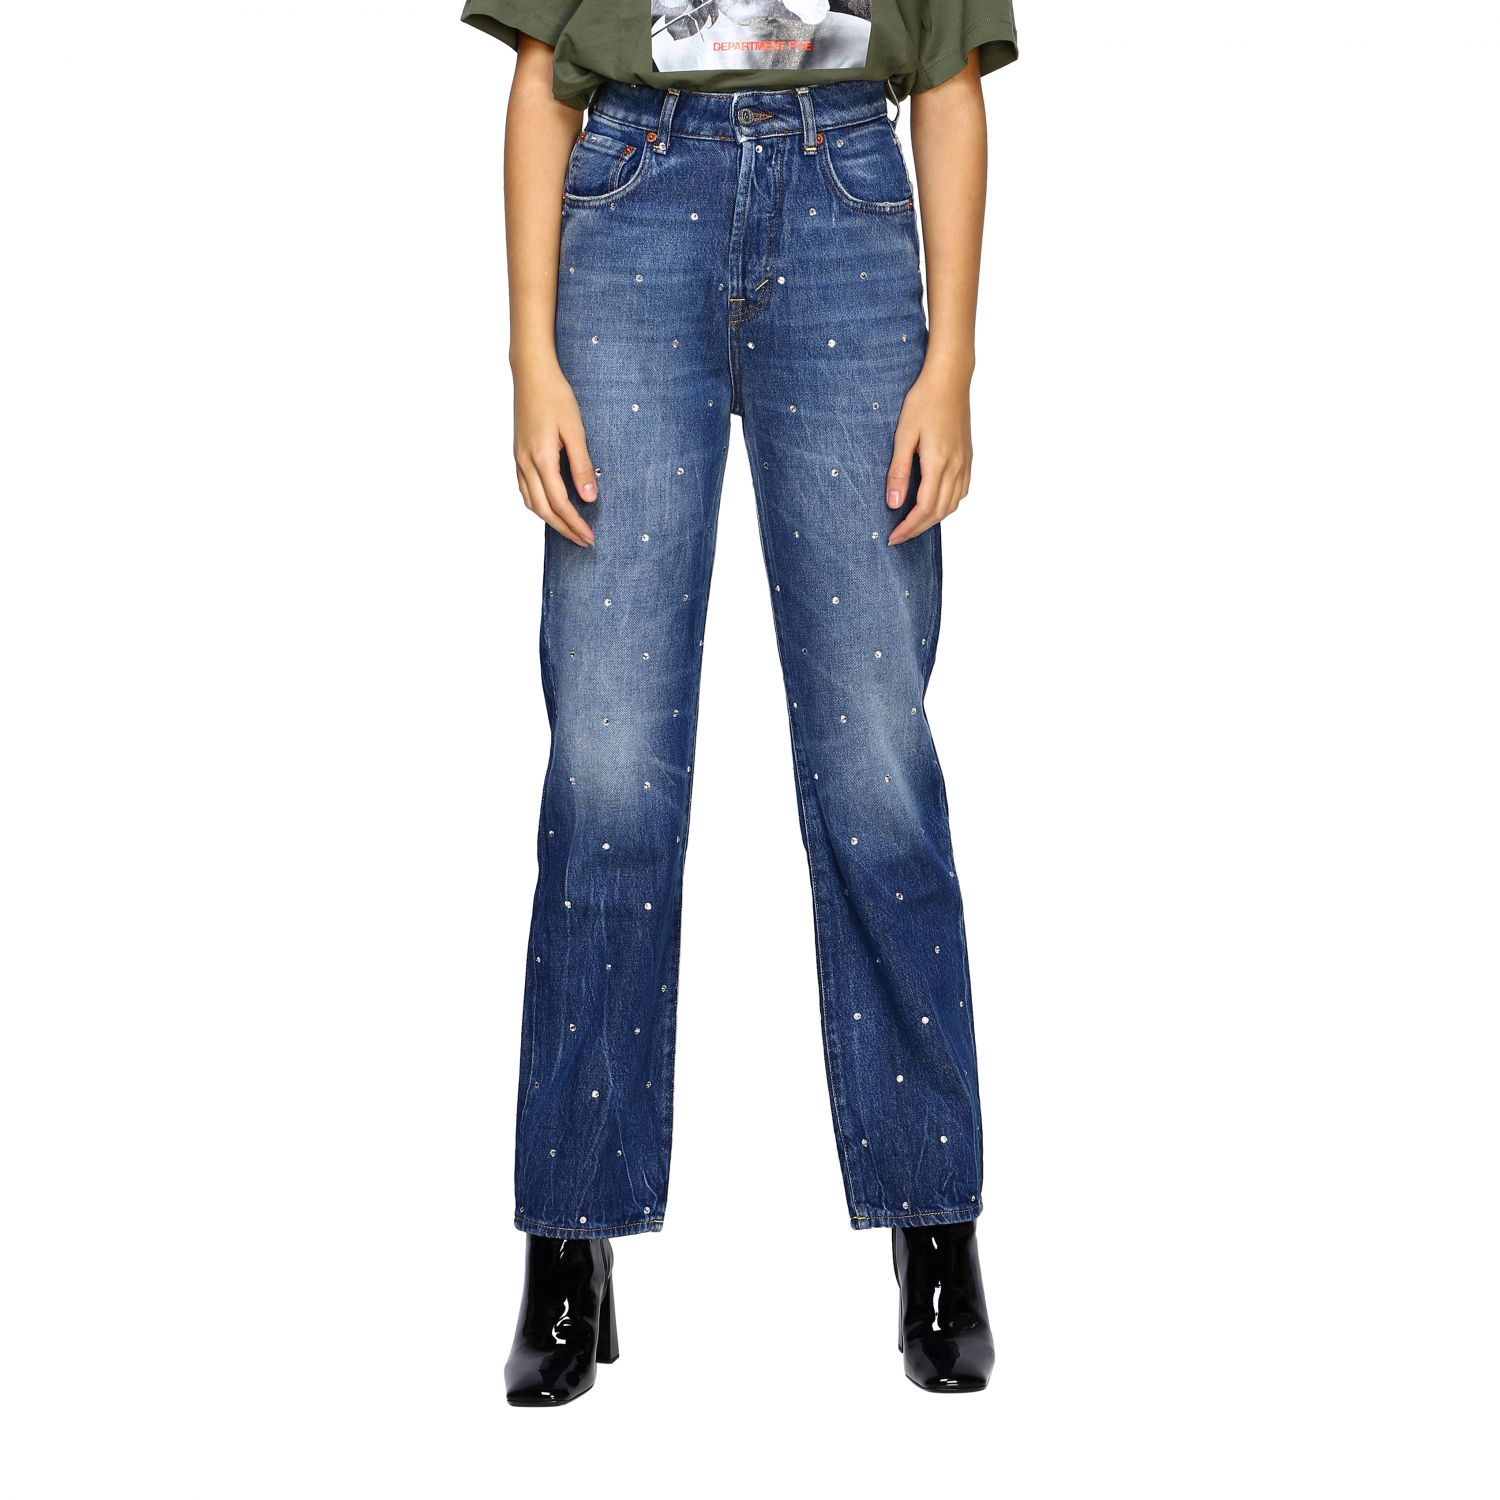 Jeans women Department 5 blue 1